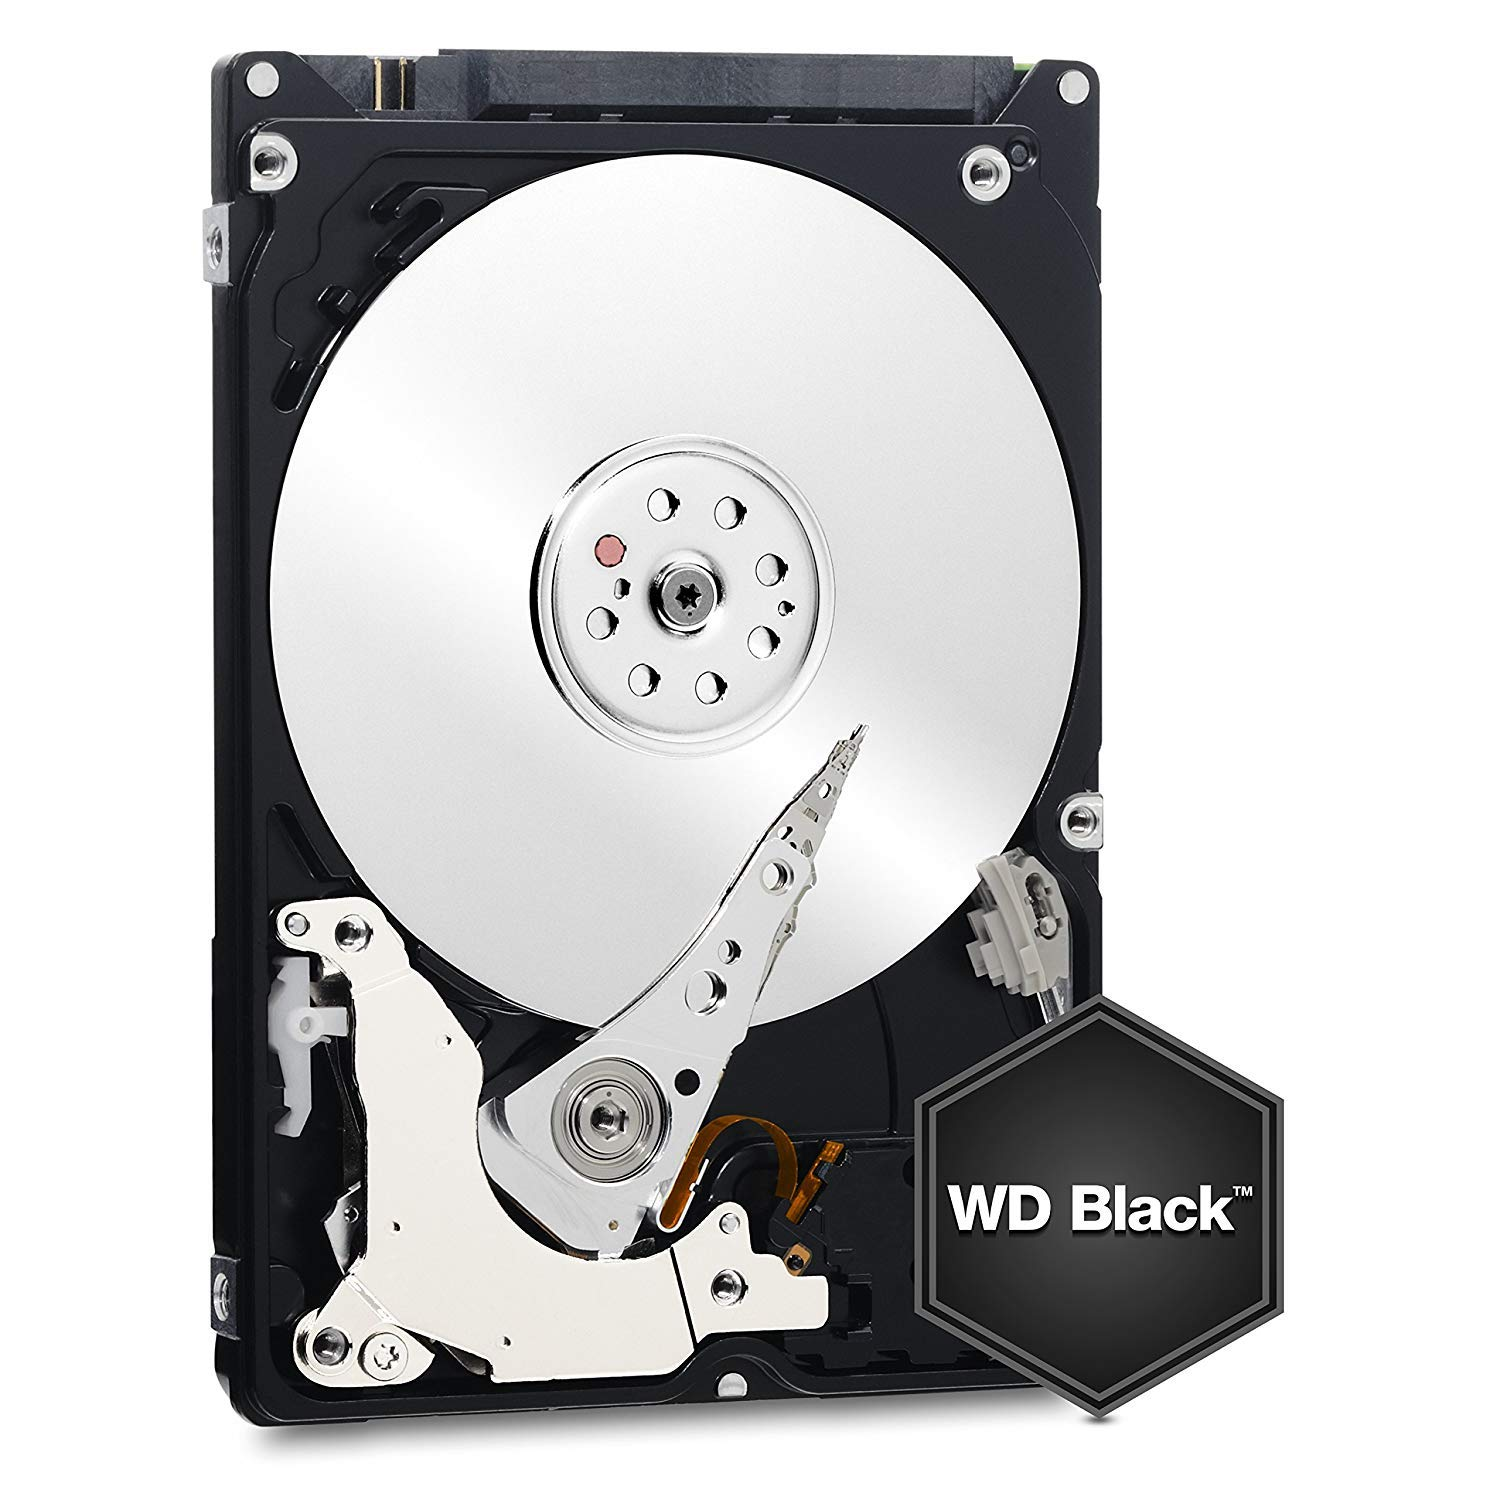 WD Black 1TB Performance Mobile Hard Disk Drive - 7200 RPM SATA 6 Gb/s 32MB Cache 9.5 MM 2.5 Inch - WD10JPLX by Western Digital (Image #4)